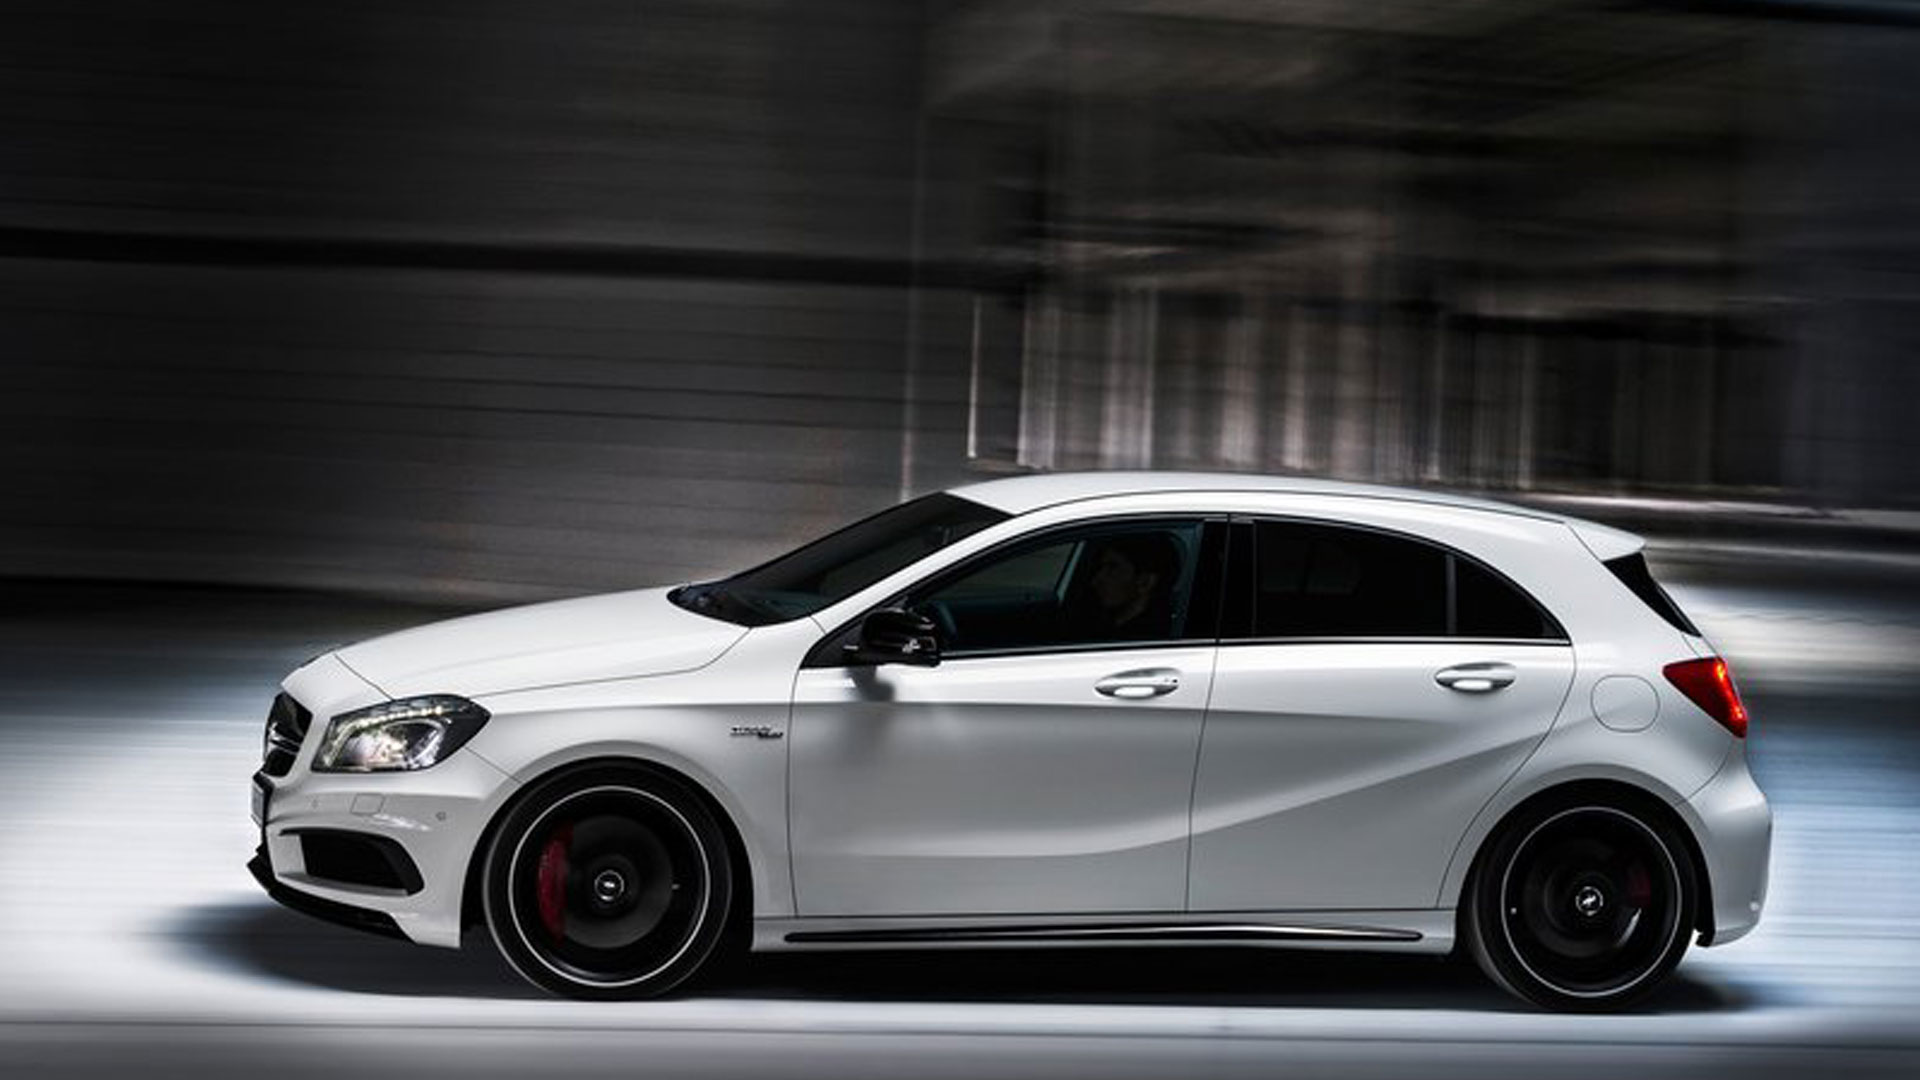 2014 Mercedes AMG A45 engine HD Wallpaper